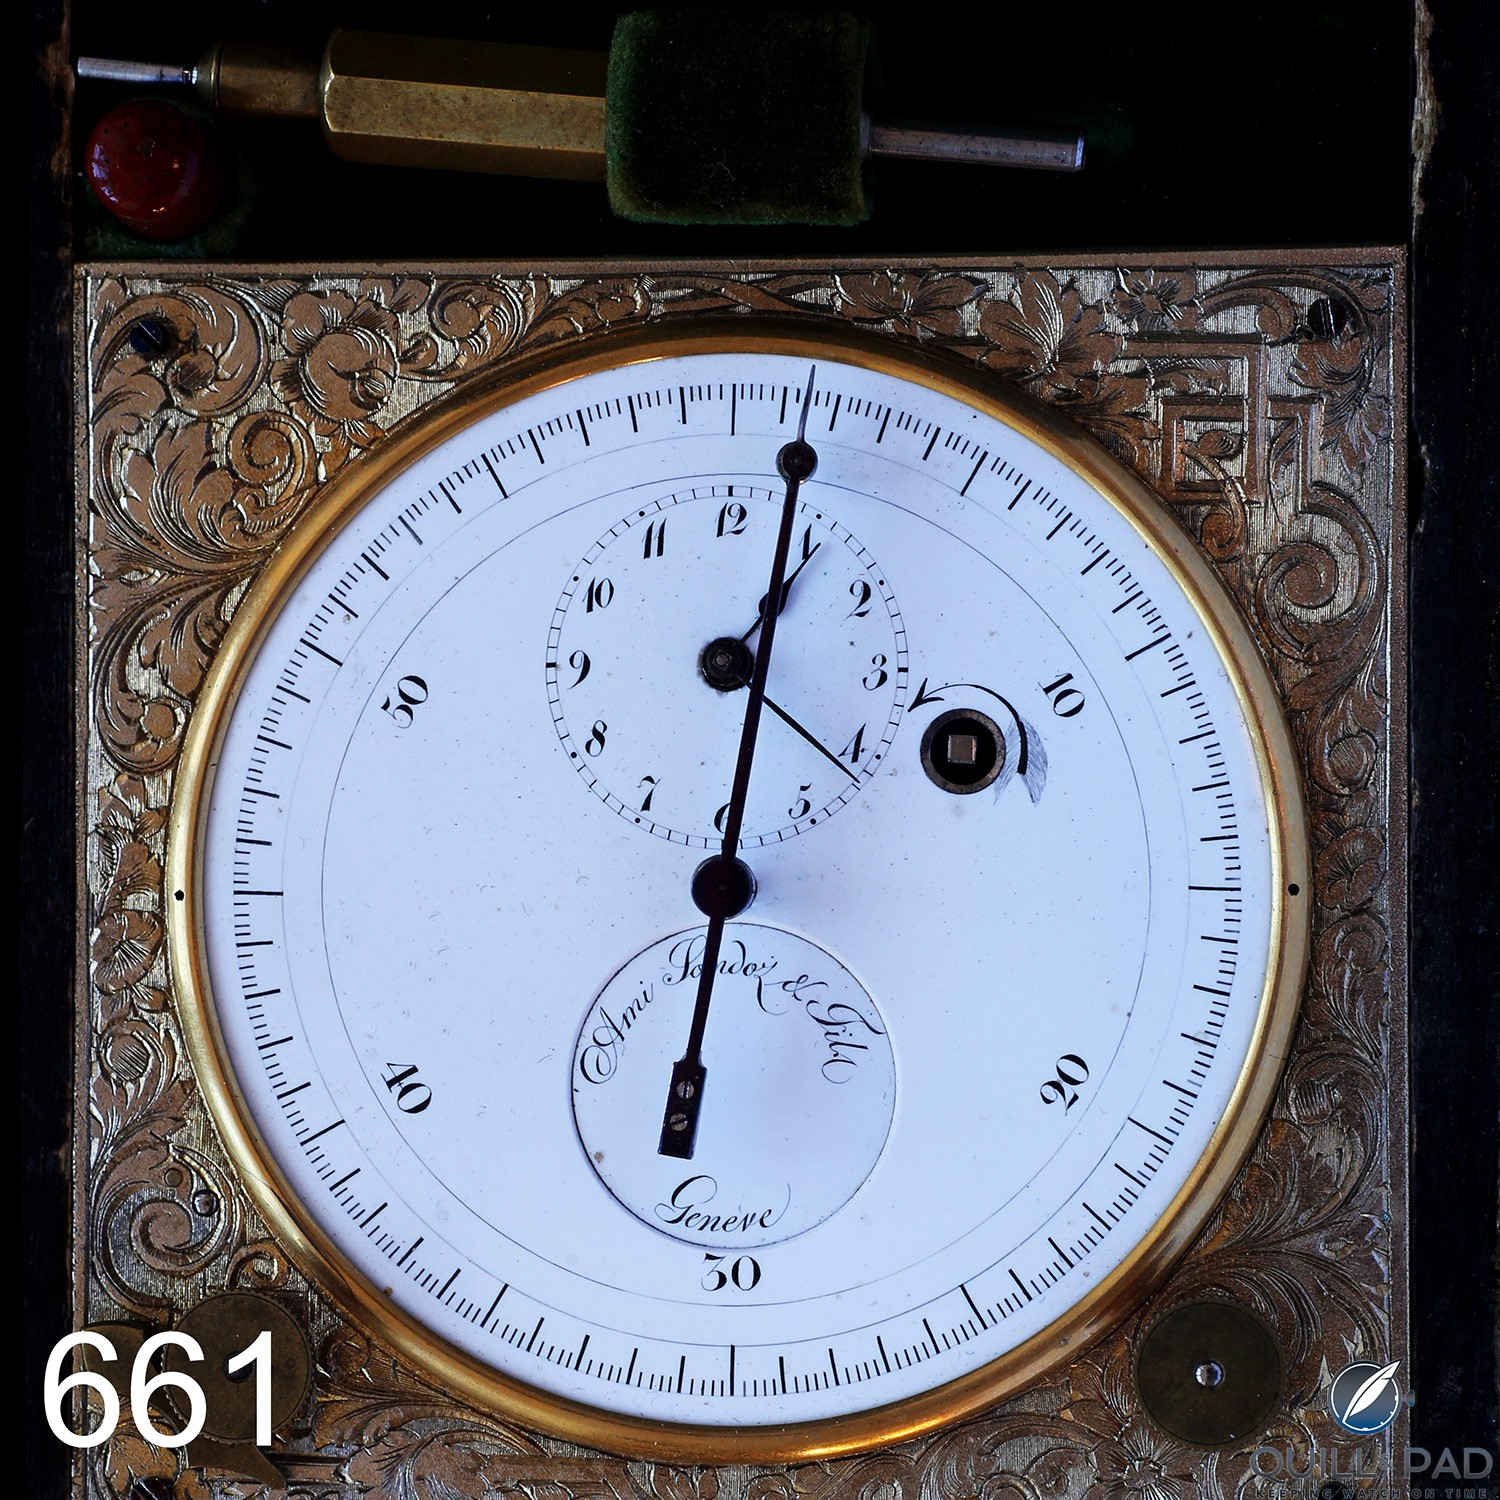 The Ami Sandoz ink-drop chronograph from Gerd-Rüdiger Lang's extensive chronograph collection (photo courtesy Kurt Strehlow)